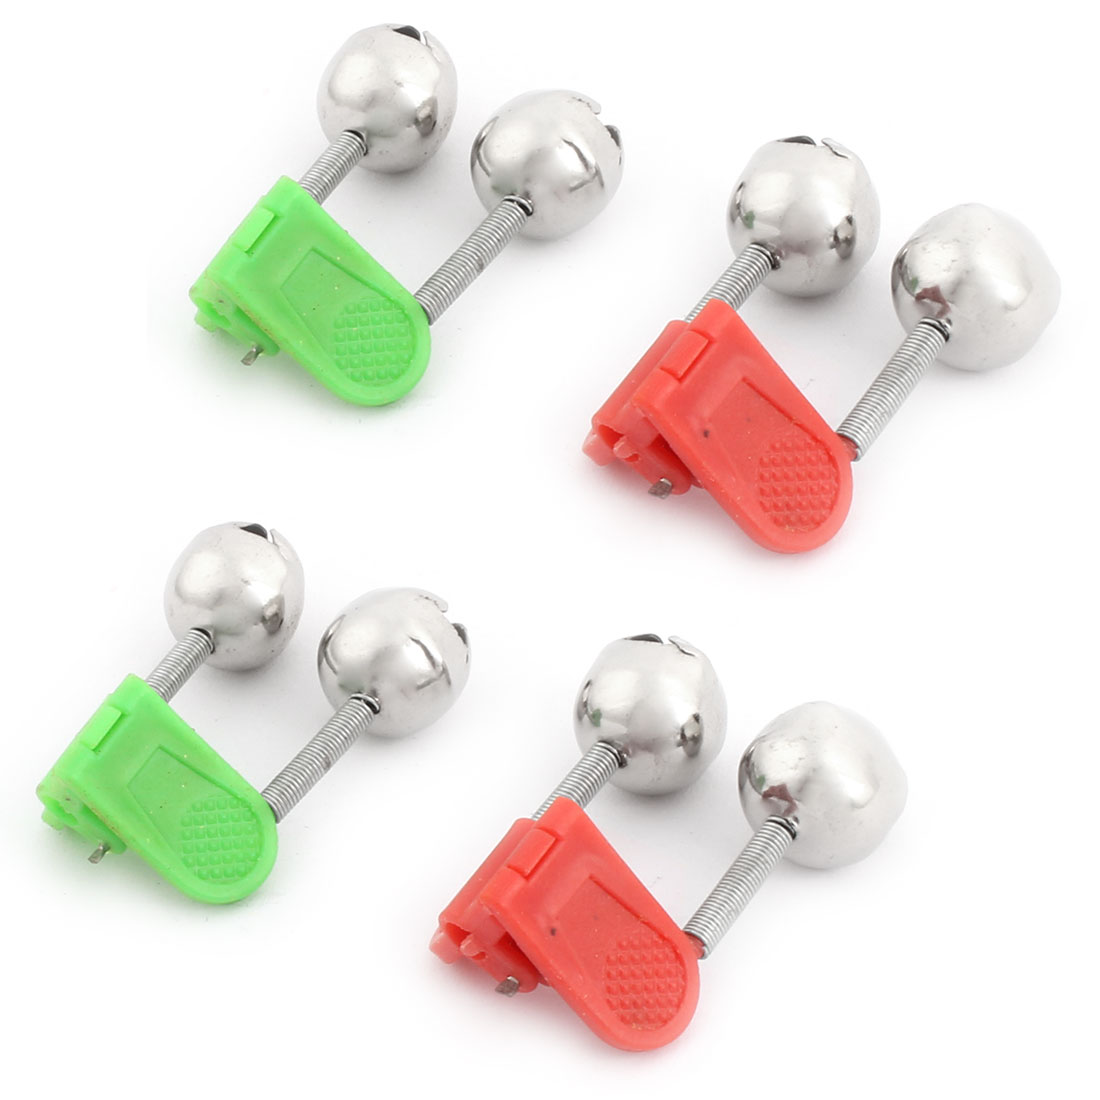 4PCS Round Twin Alert Bell Fishing Rod Alarm w Clip